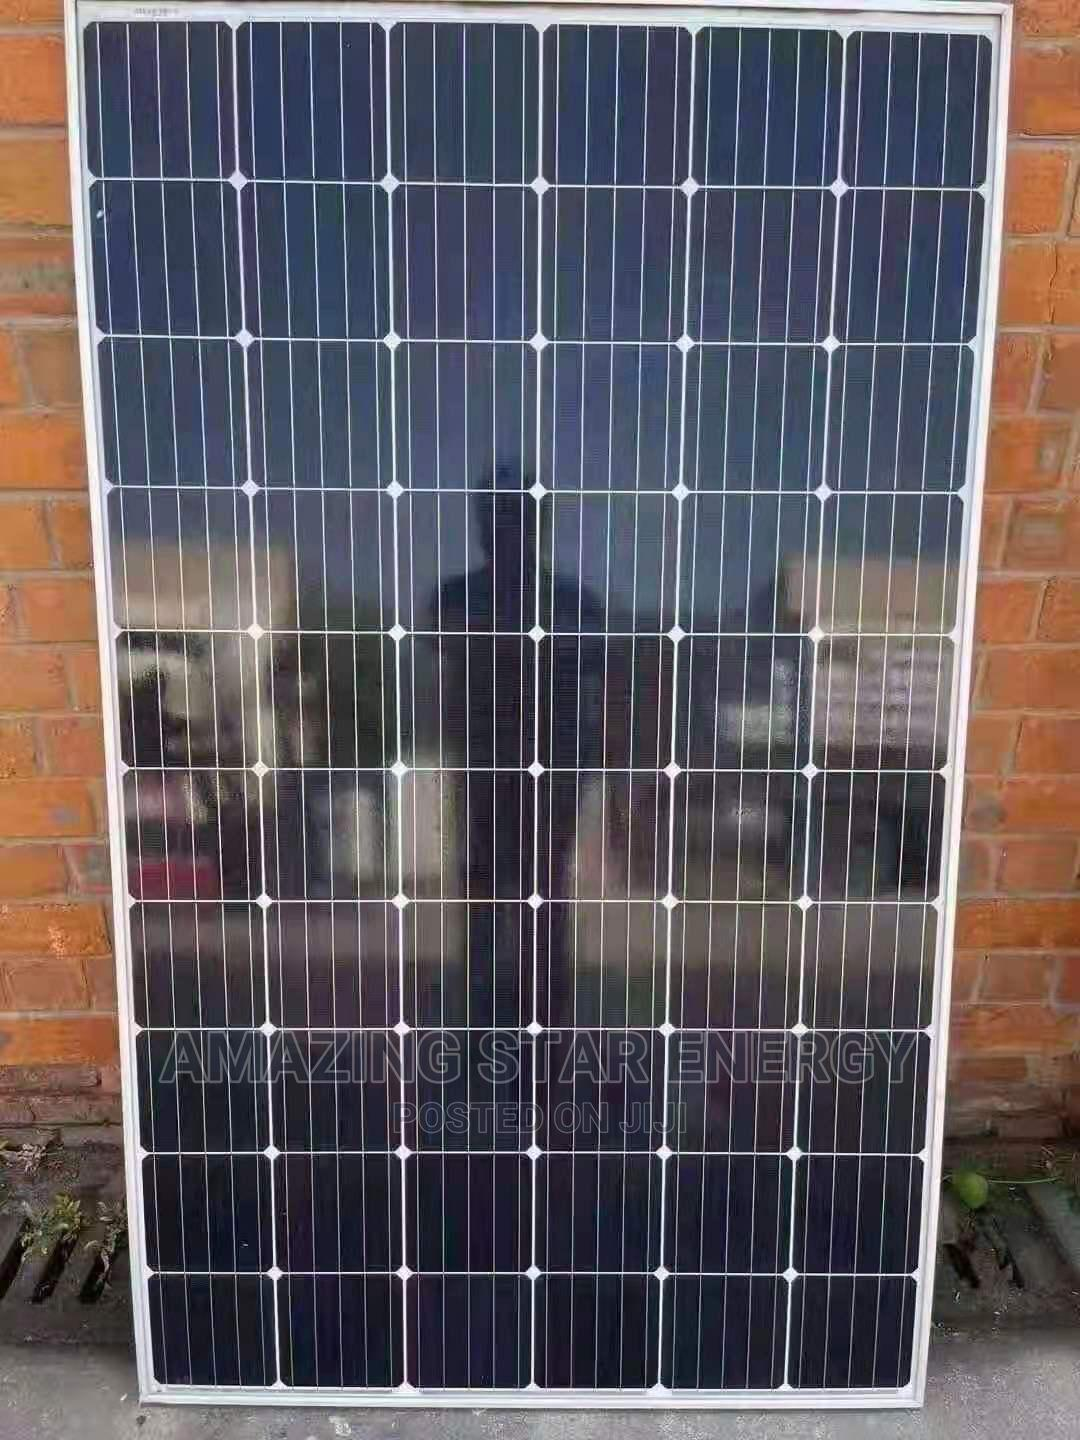 Newly Imported 500w Solar Panels With Super Quality.